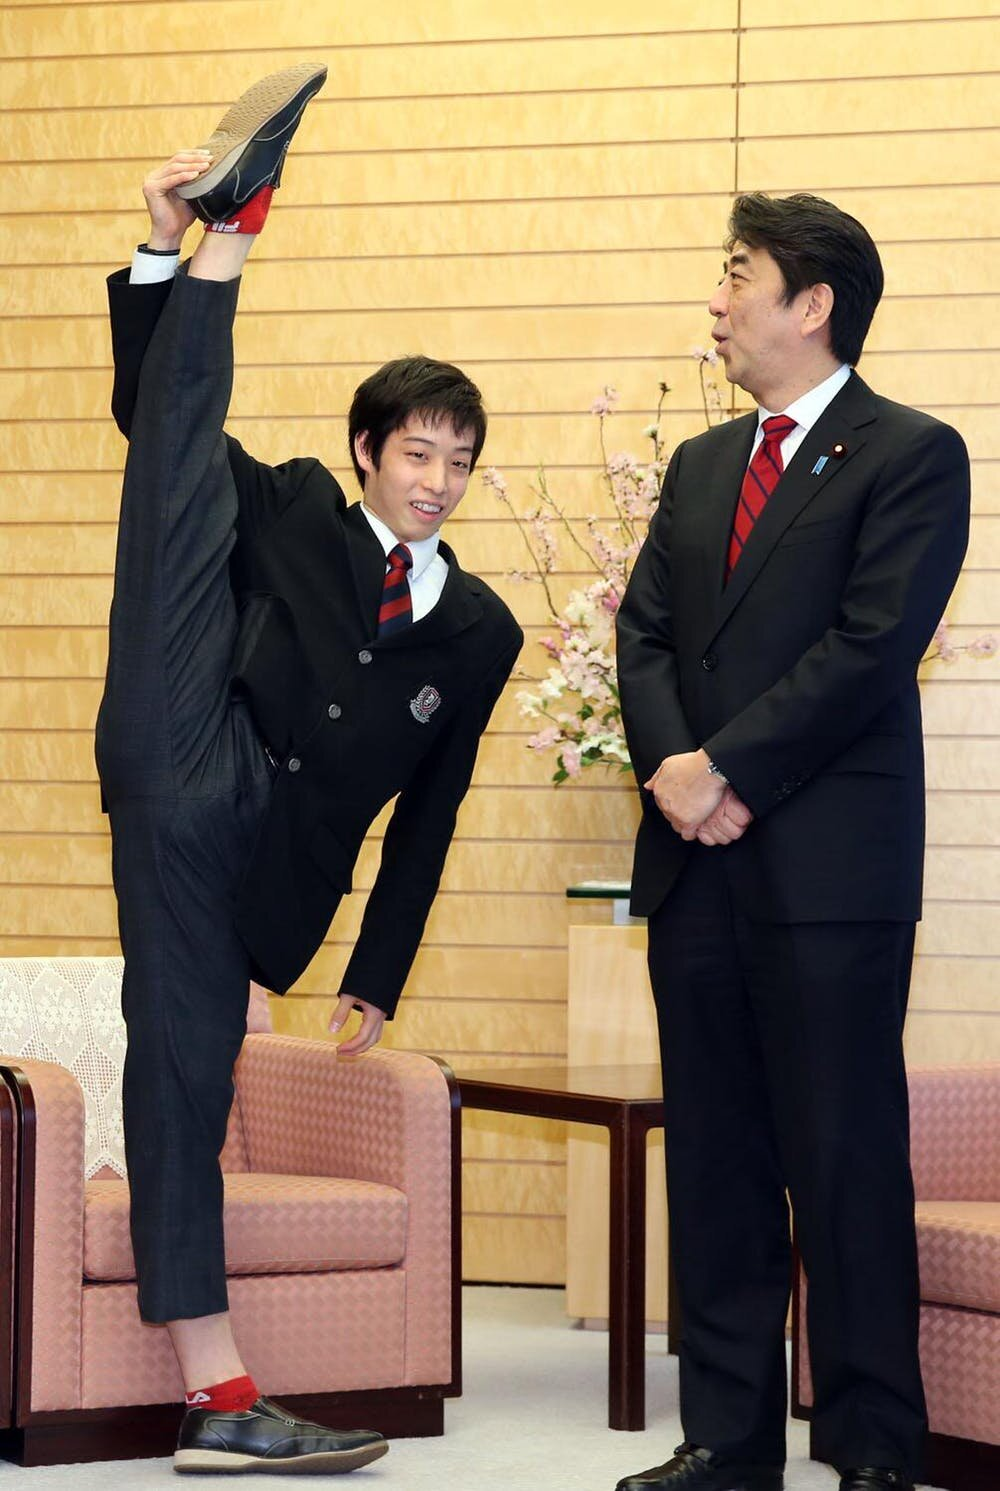 Boys dance too—and in Japan they are celebrated